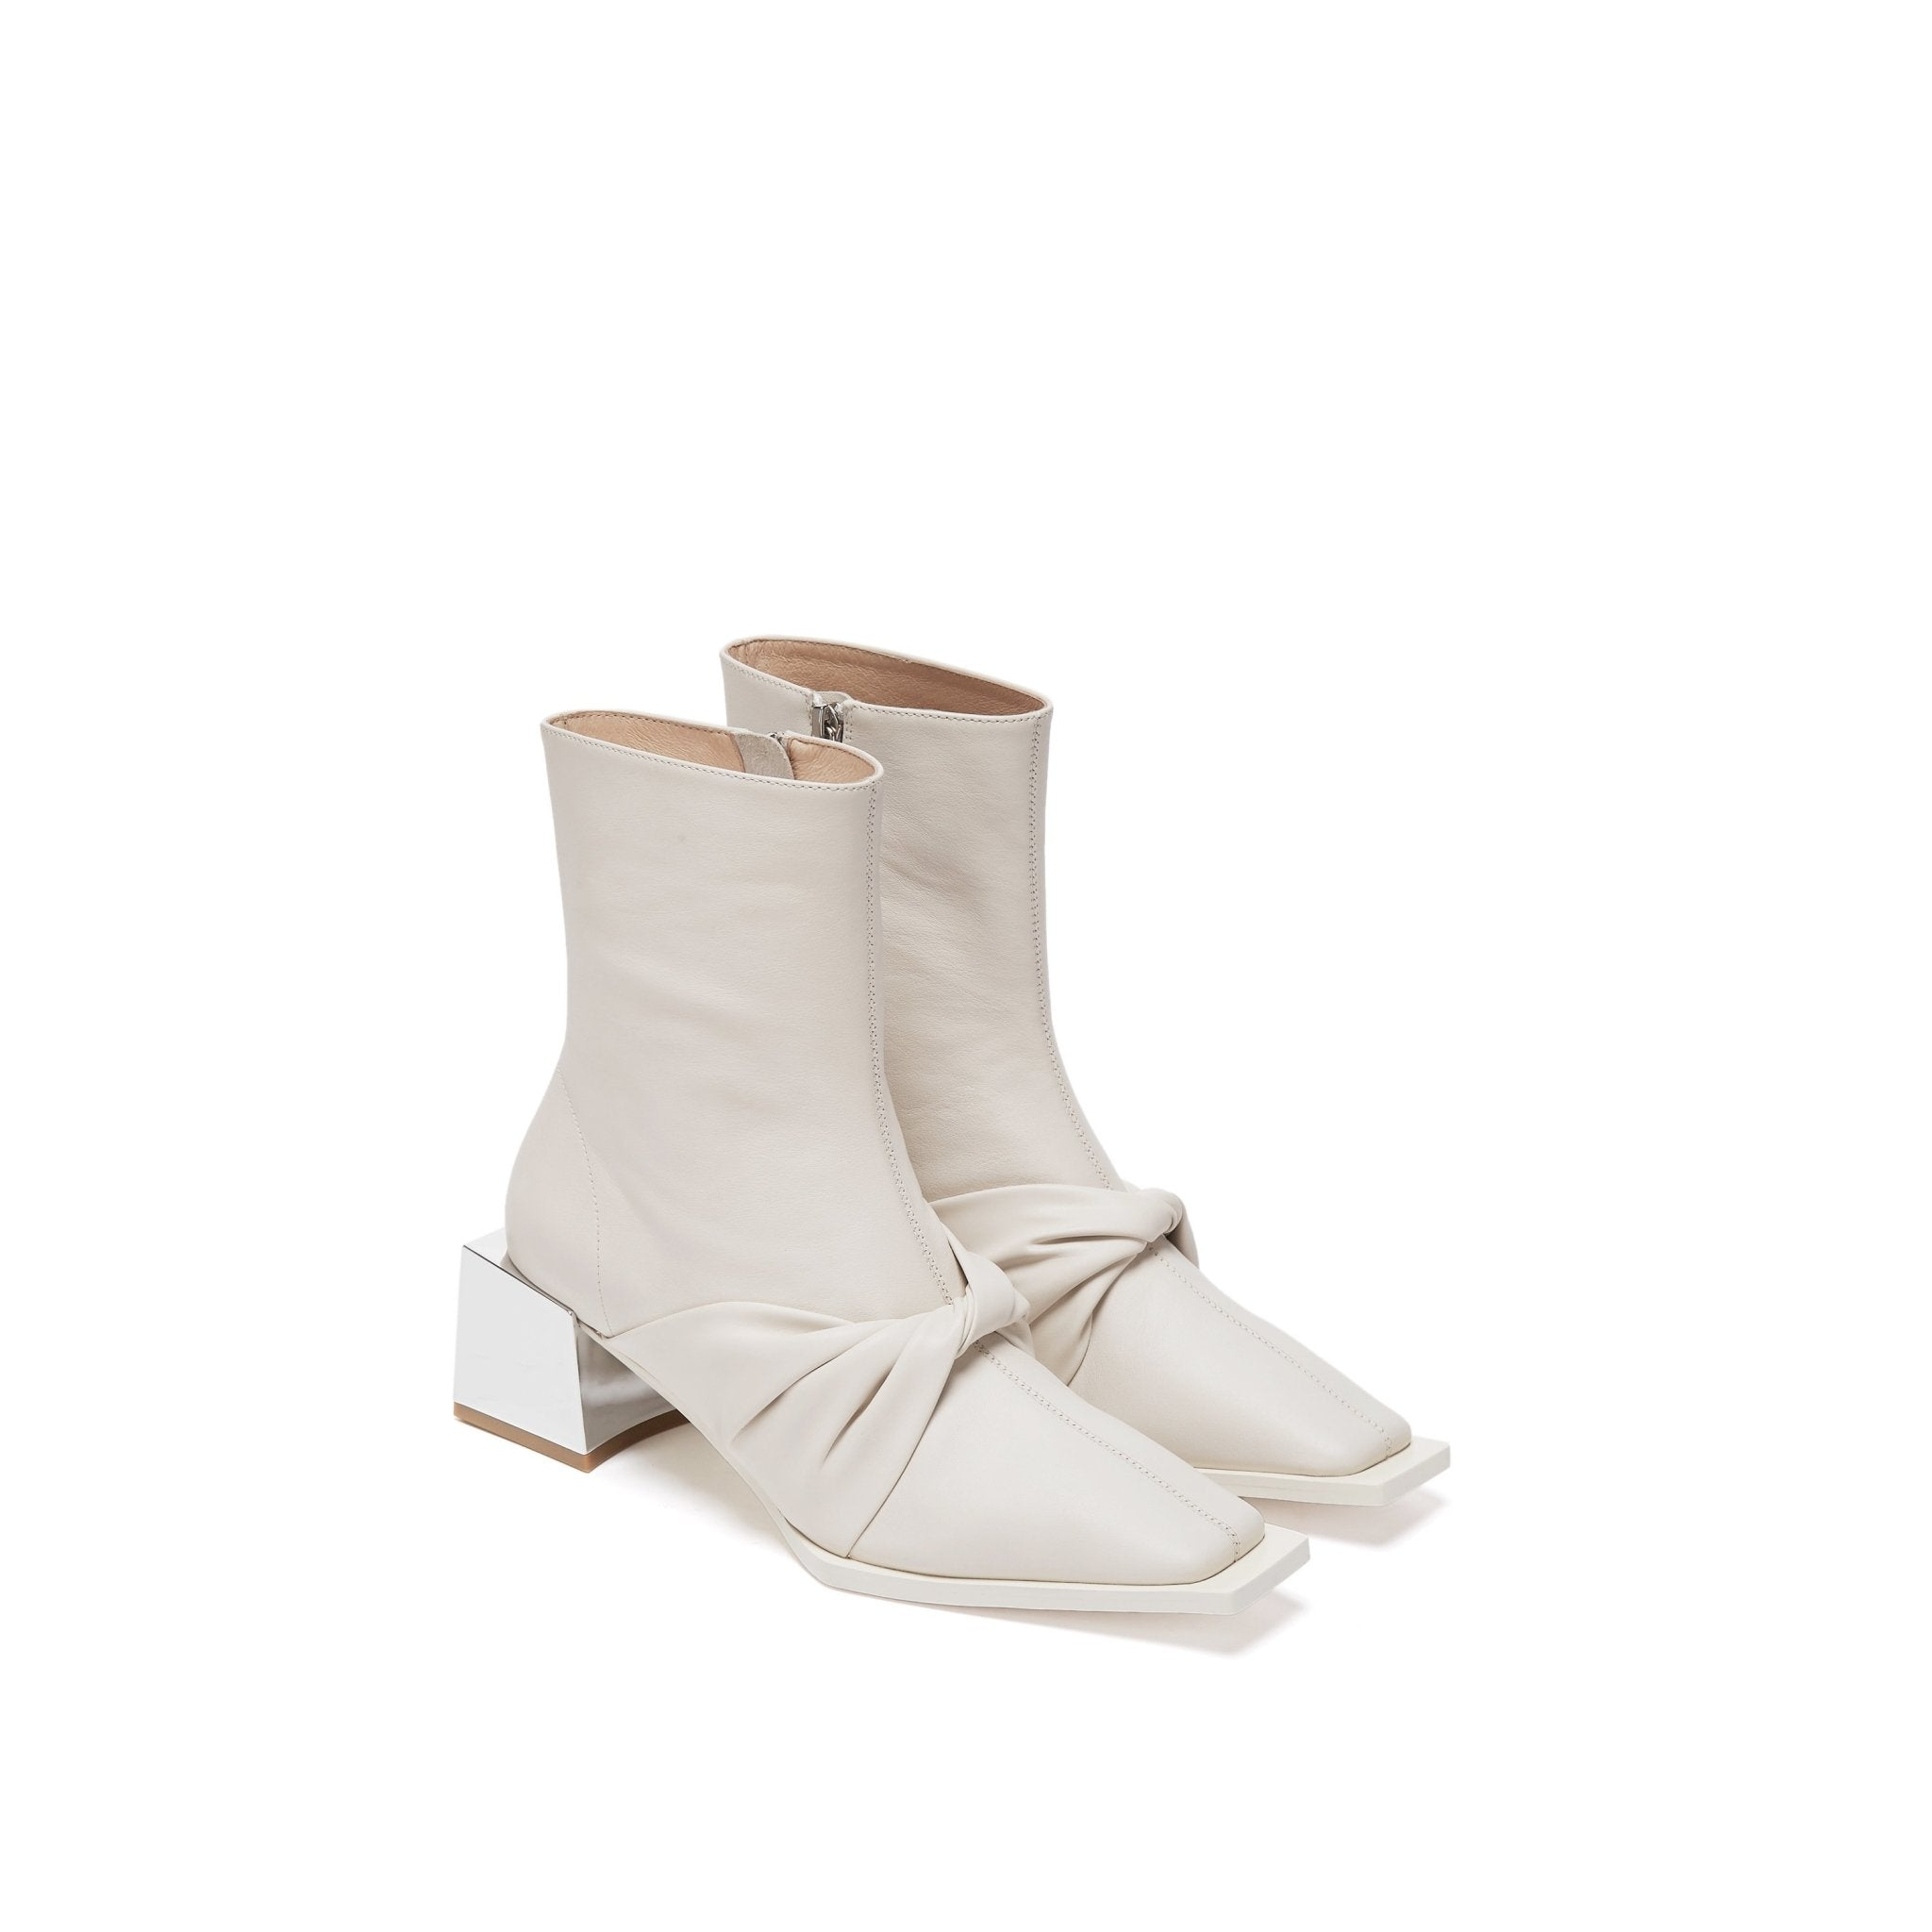 LOST IN ECHO White Metal Toe Lambskin Boots | MADA IN CHINA